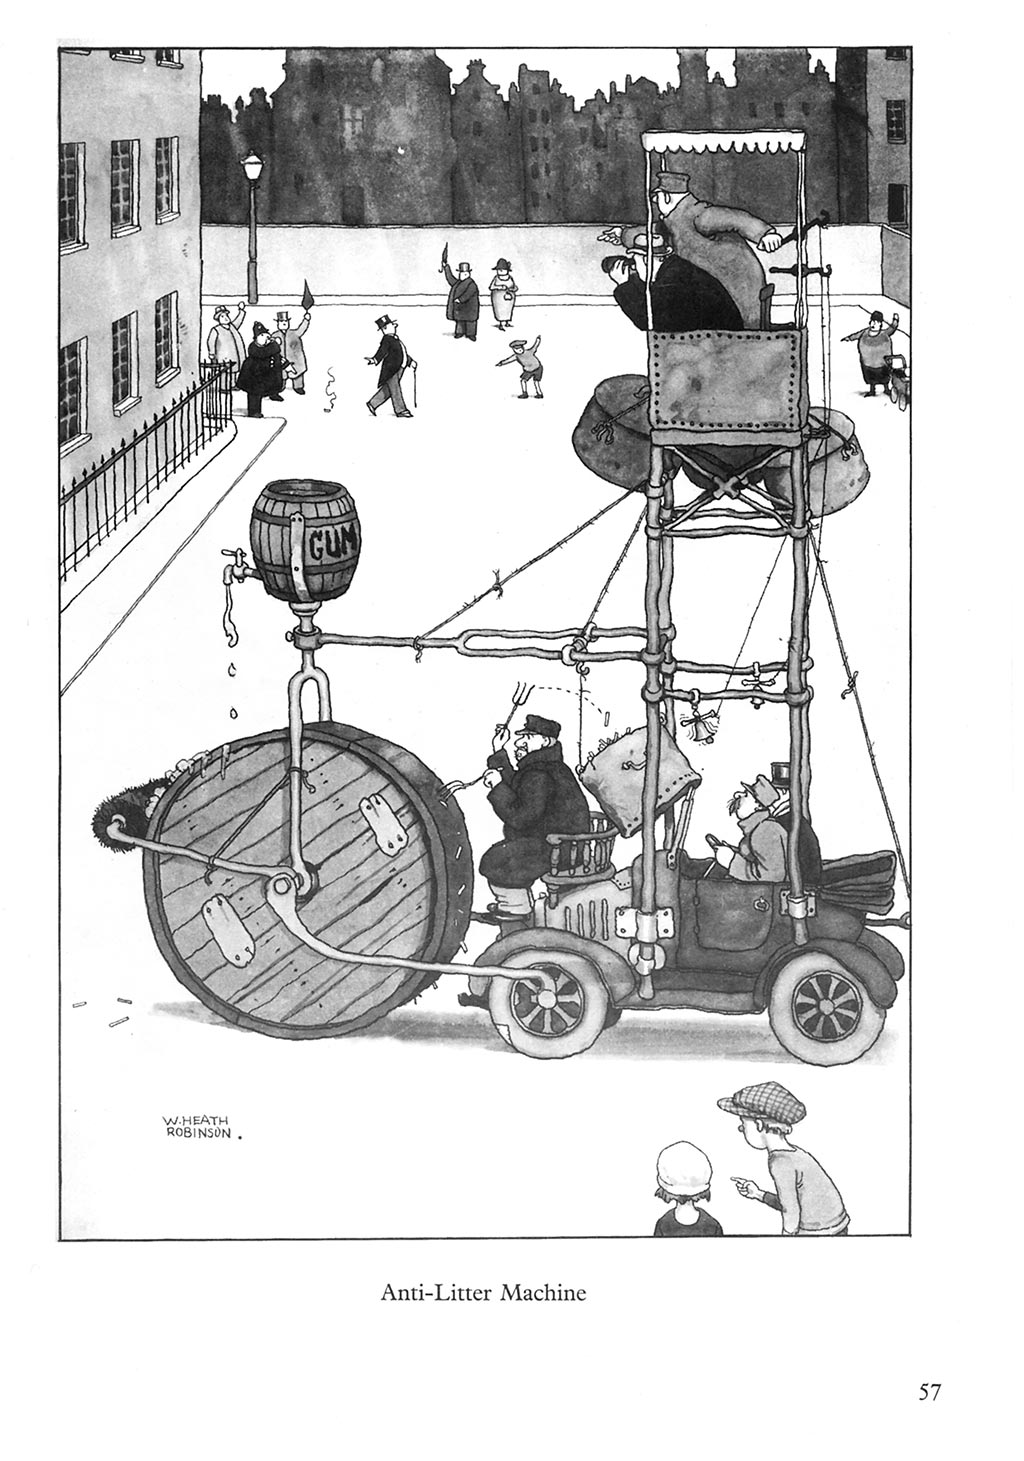 william_heath_robinson_inventions_-_page_057